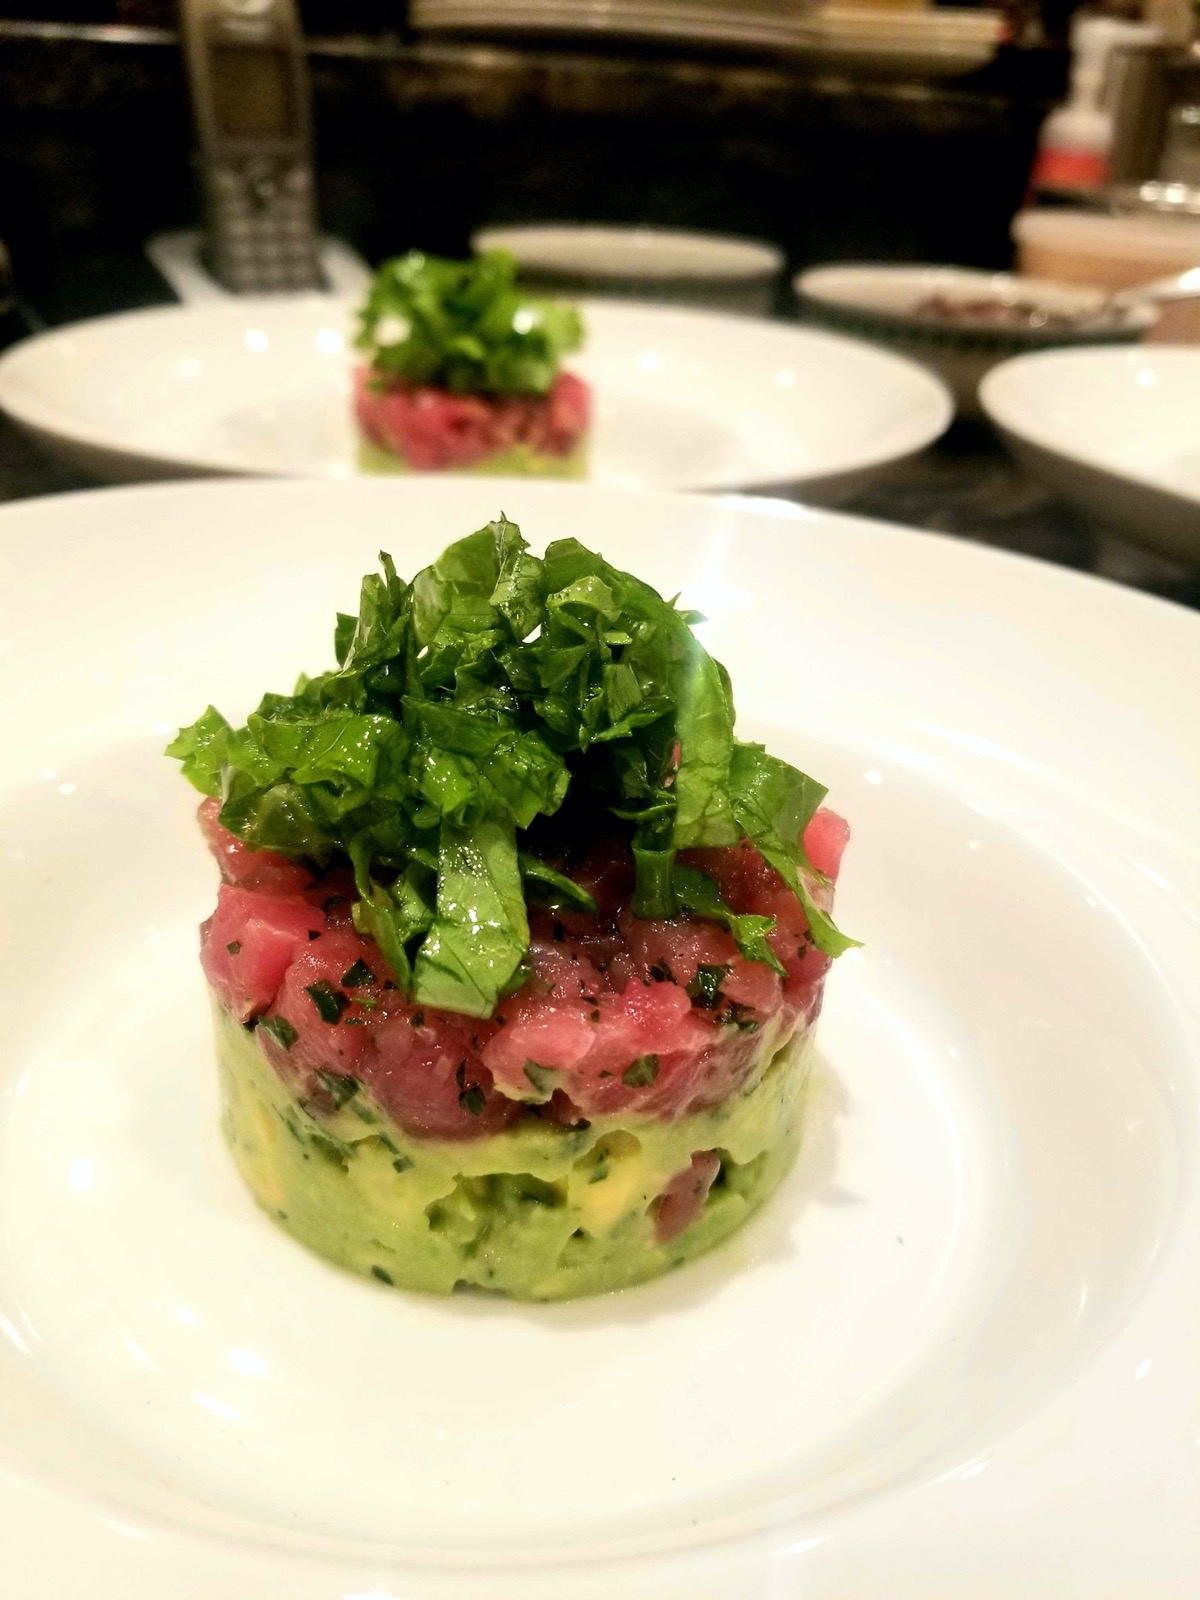 Tuna tartare atop avocado salad is a healthy weeknight dinner option